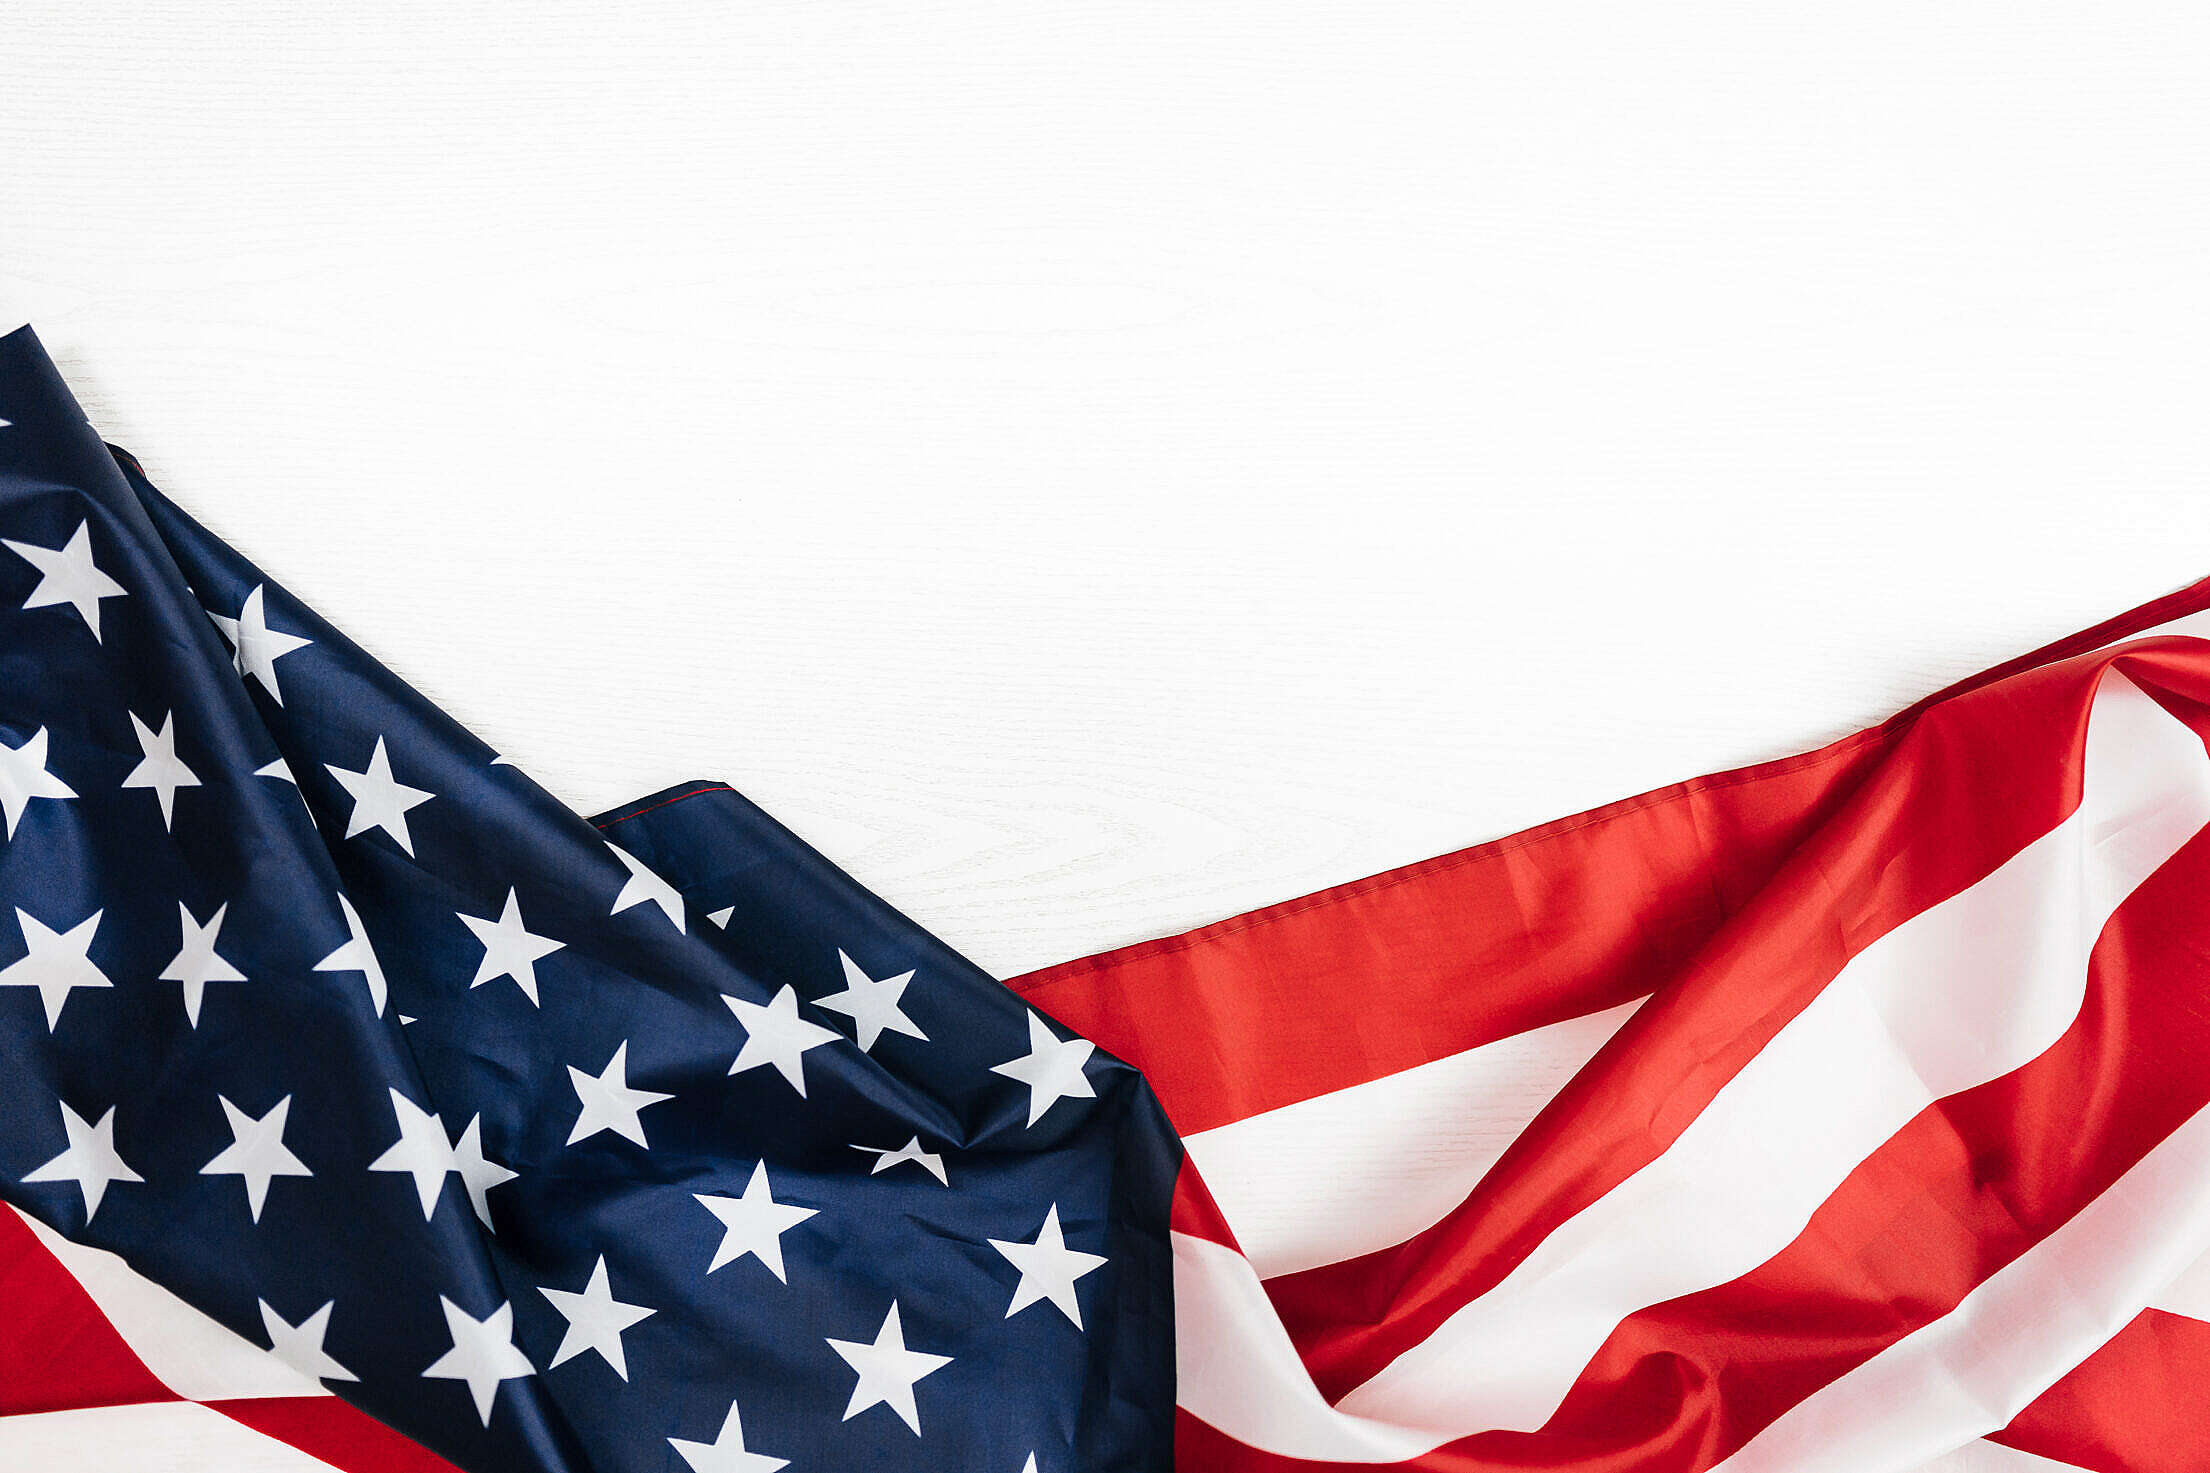 American Flag on a White Background Free Stock Photo